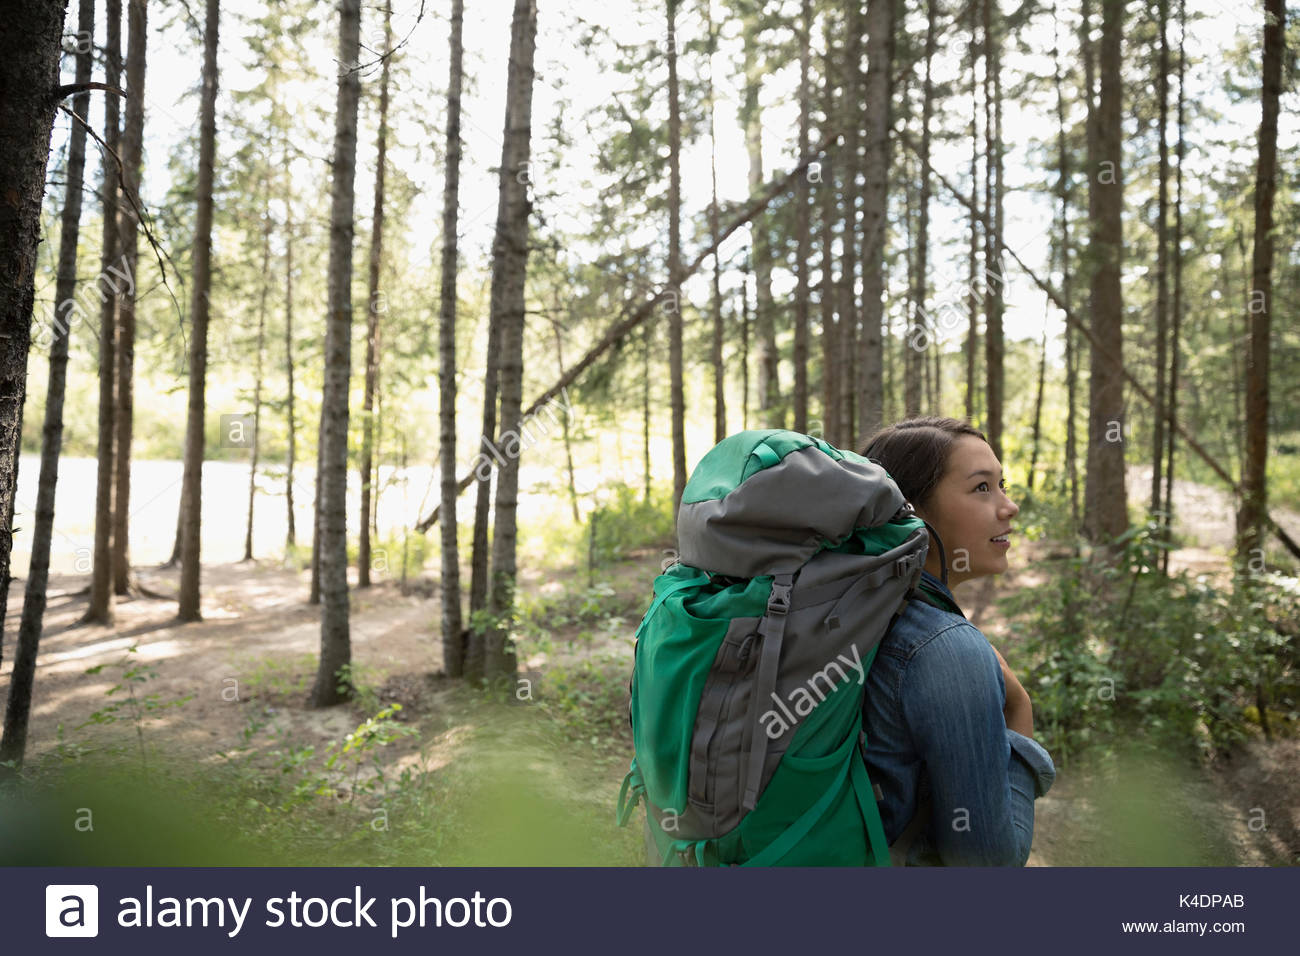 Curious teenage girl with backpack hiking in woods - Stock Image